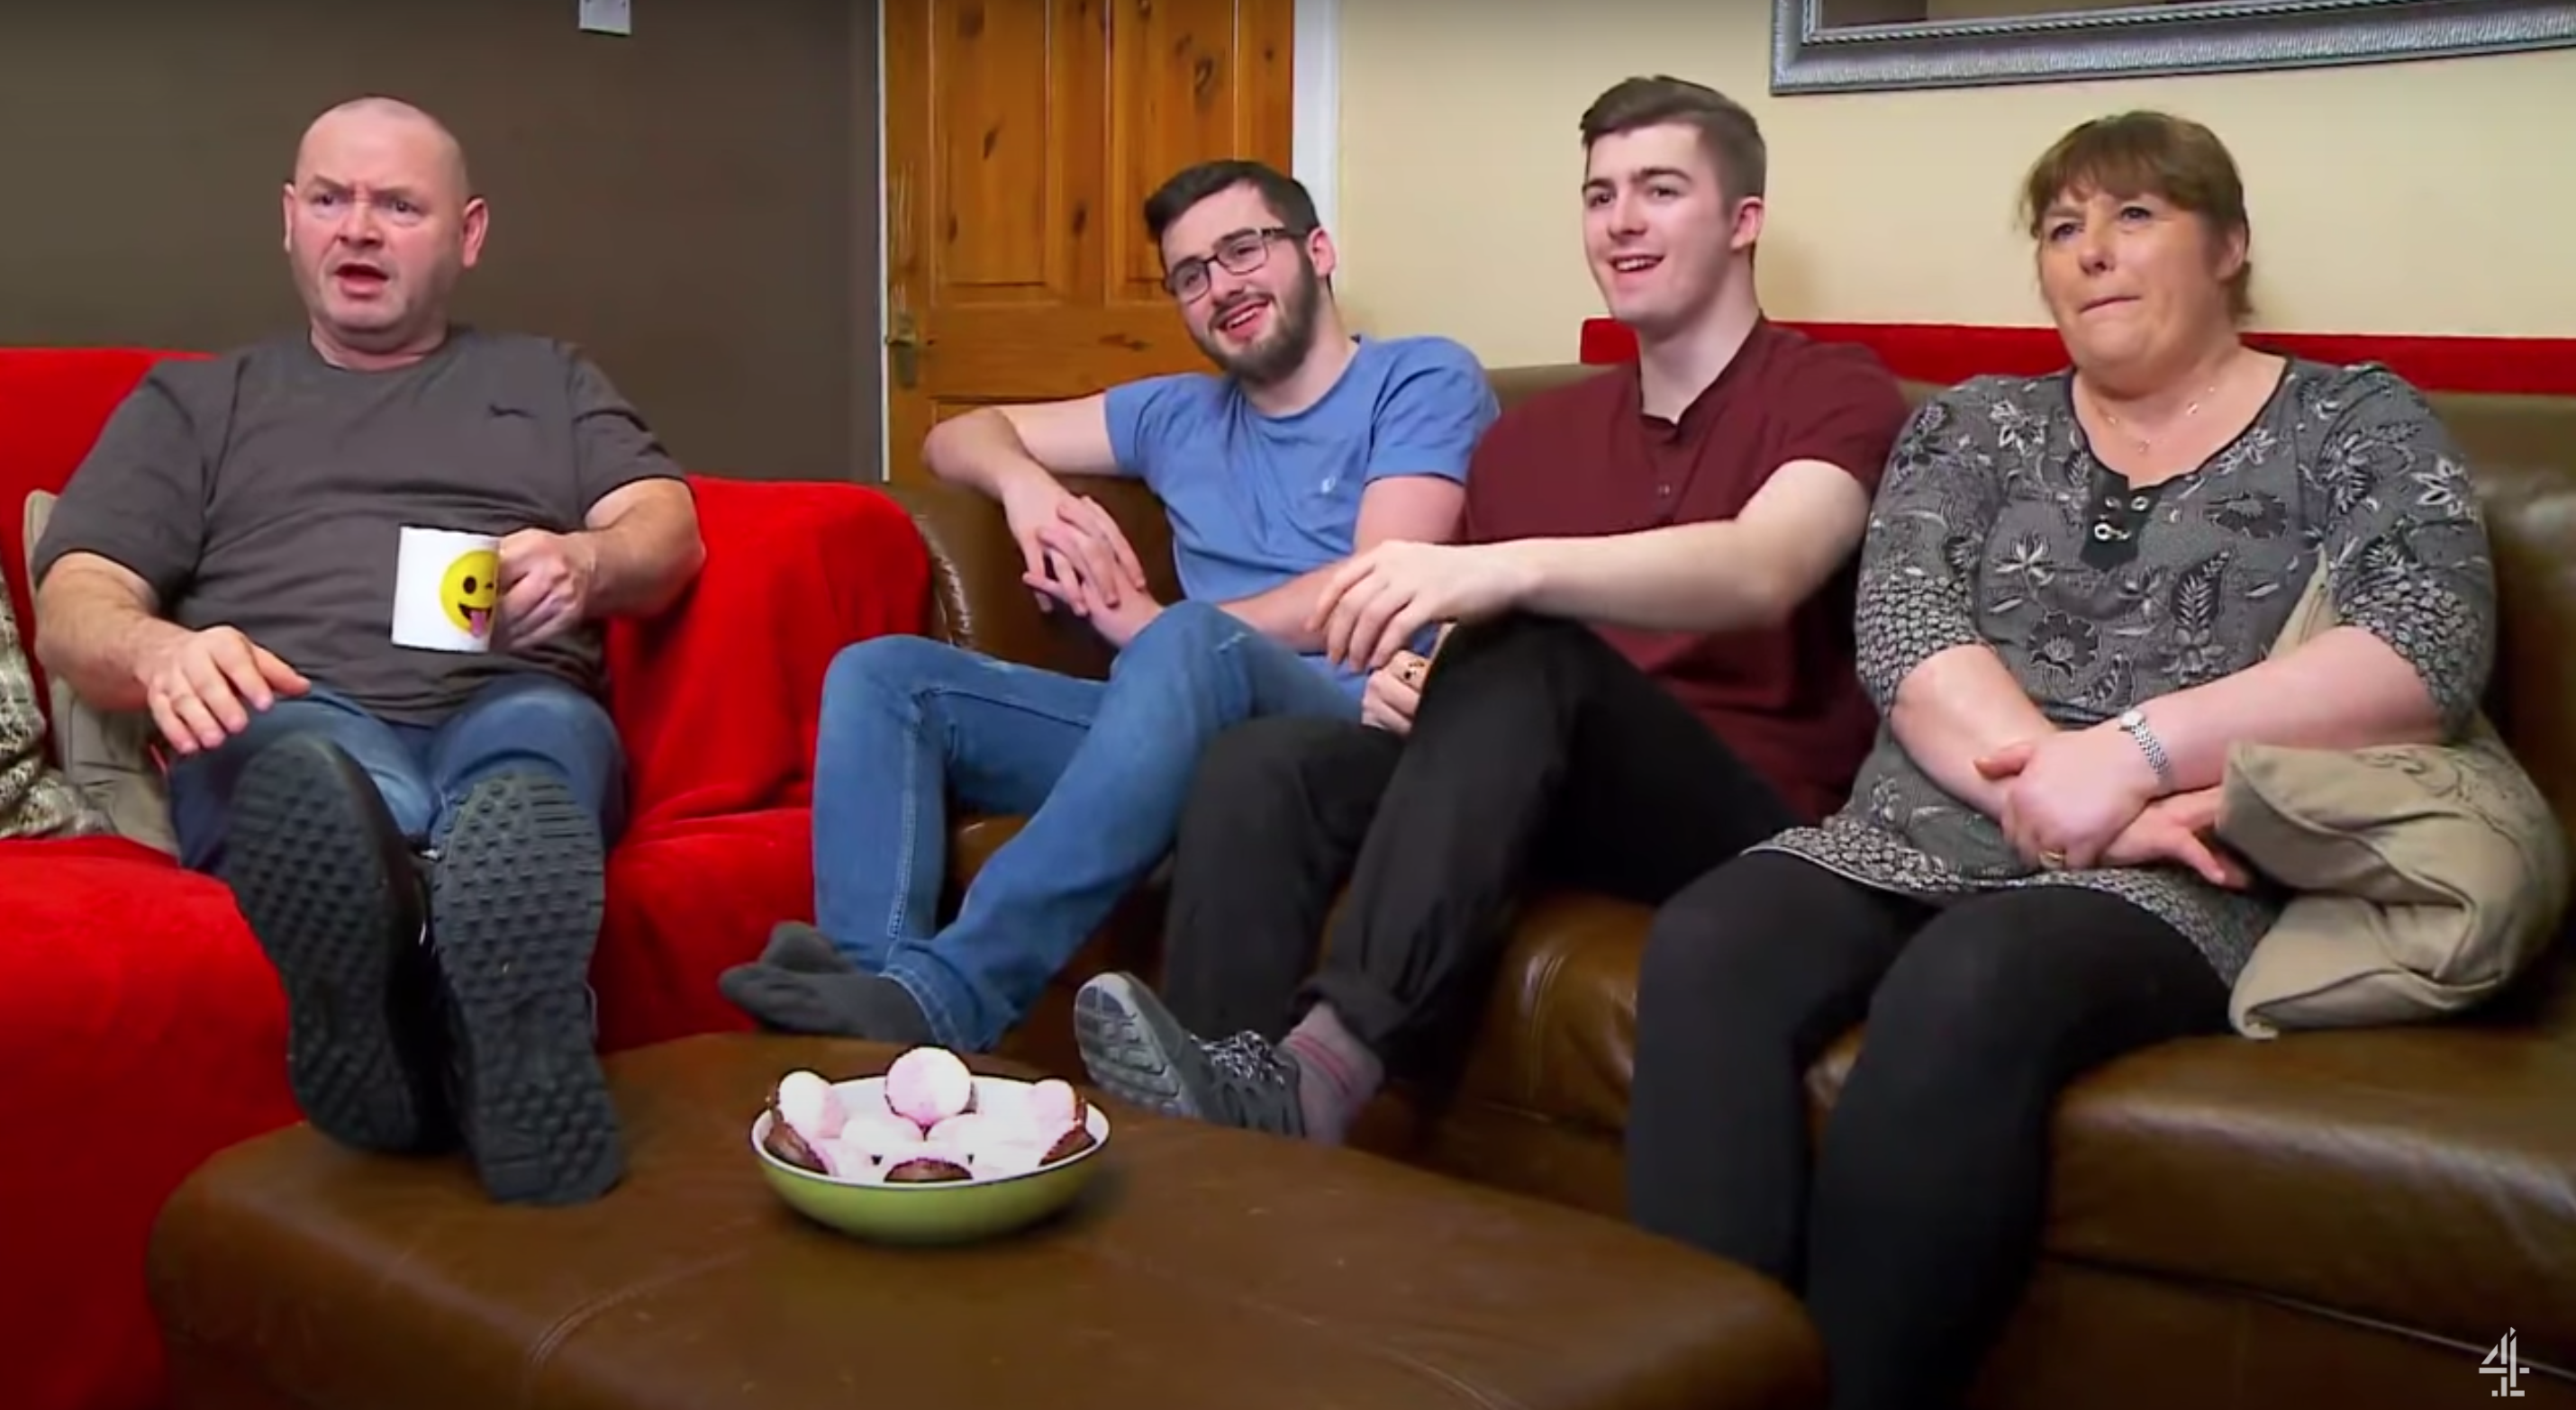 Gogglebox fans feel 'uneasy' with the Malones' 'unhygienic' habit